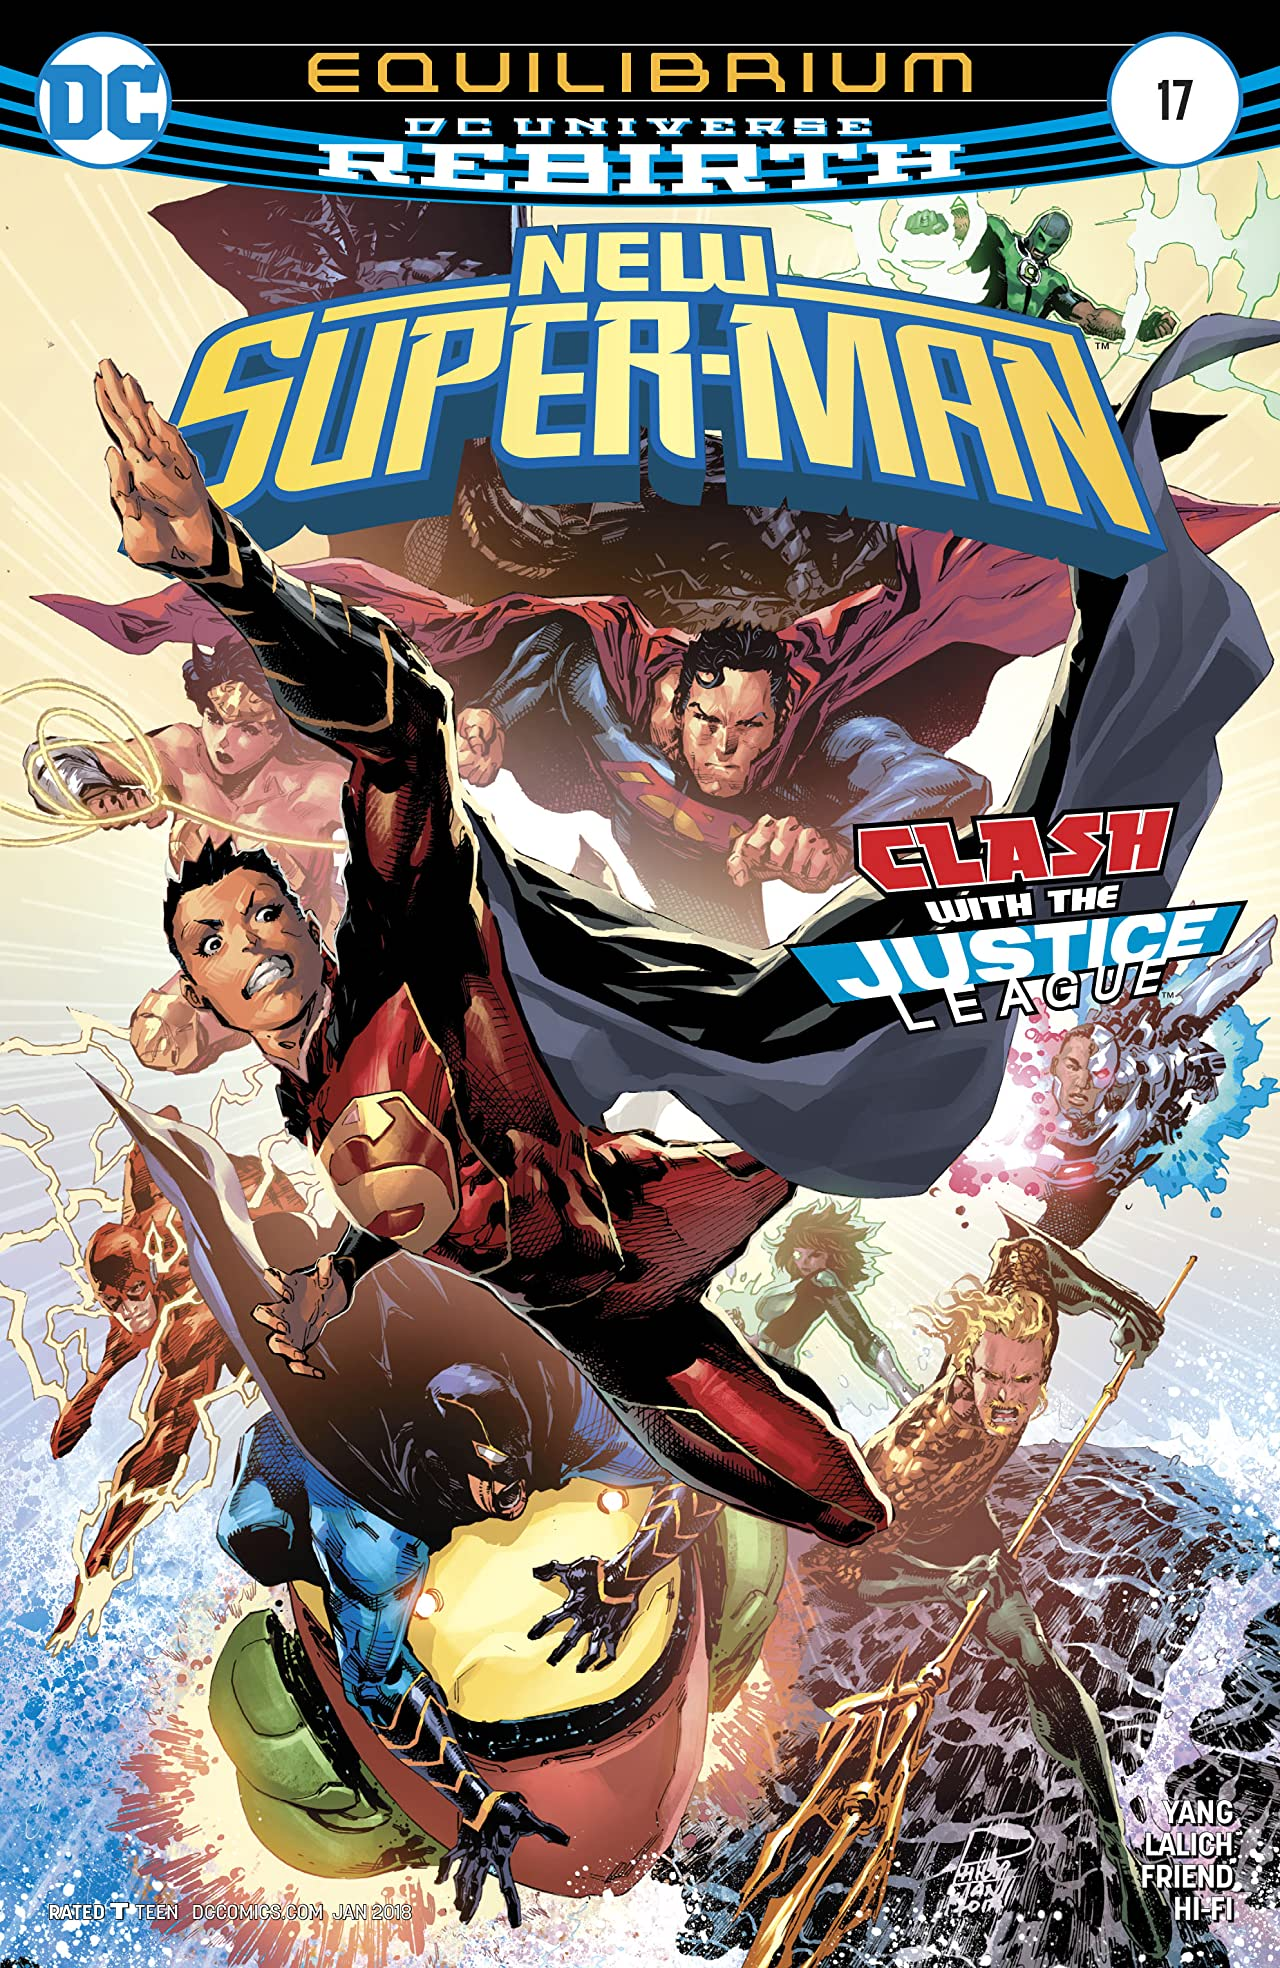 New Super-Man (2016-) #17